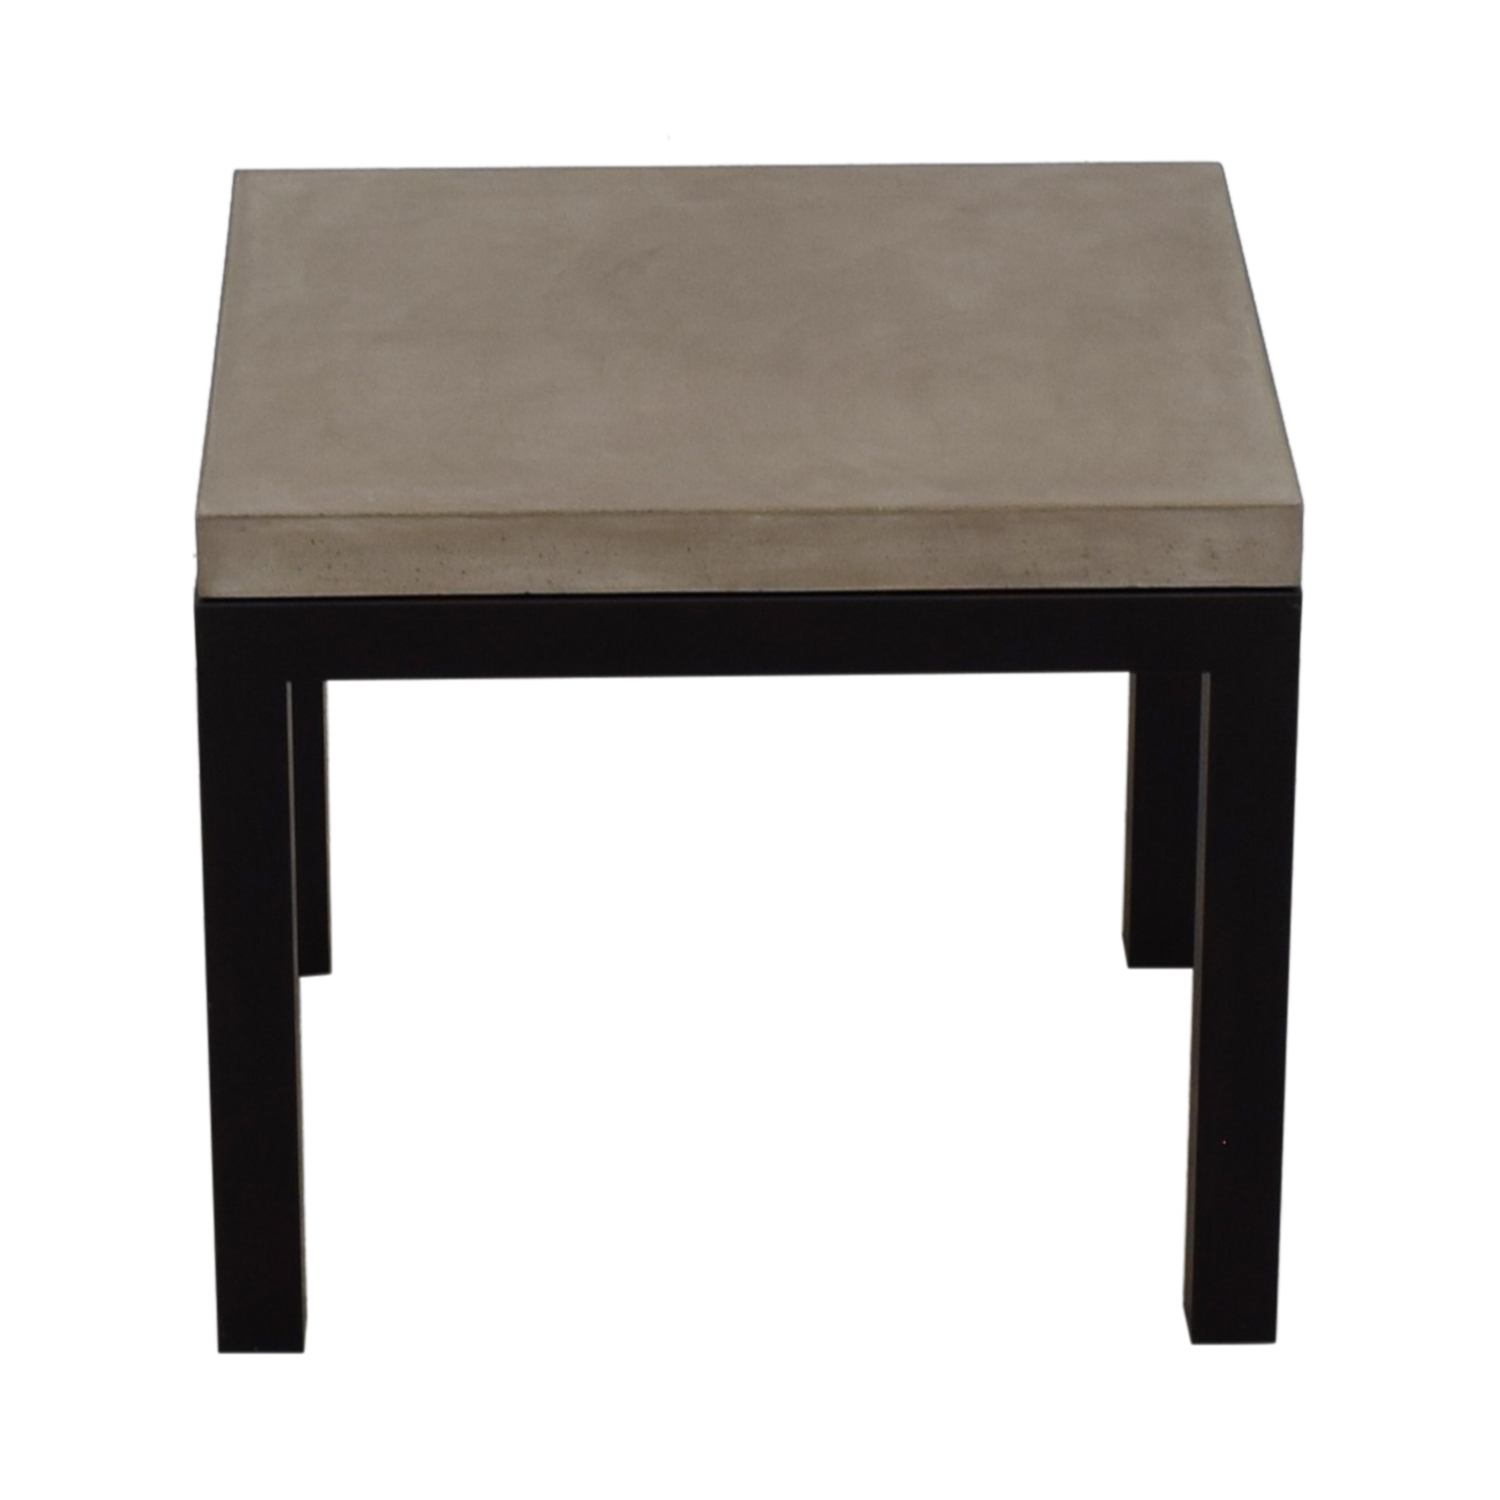 Crate & Barrel Parsons Concrete Top Dark Steel Base End Table Crate & Barrel